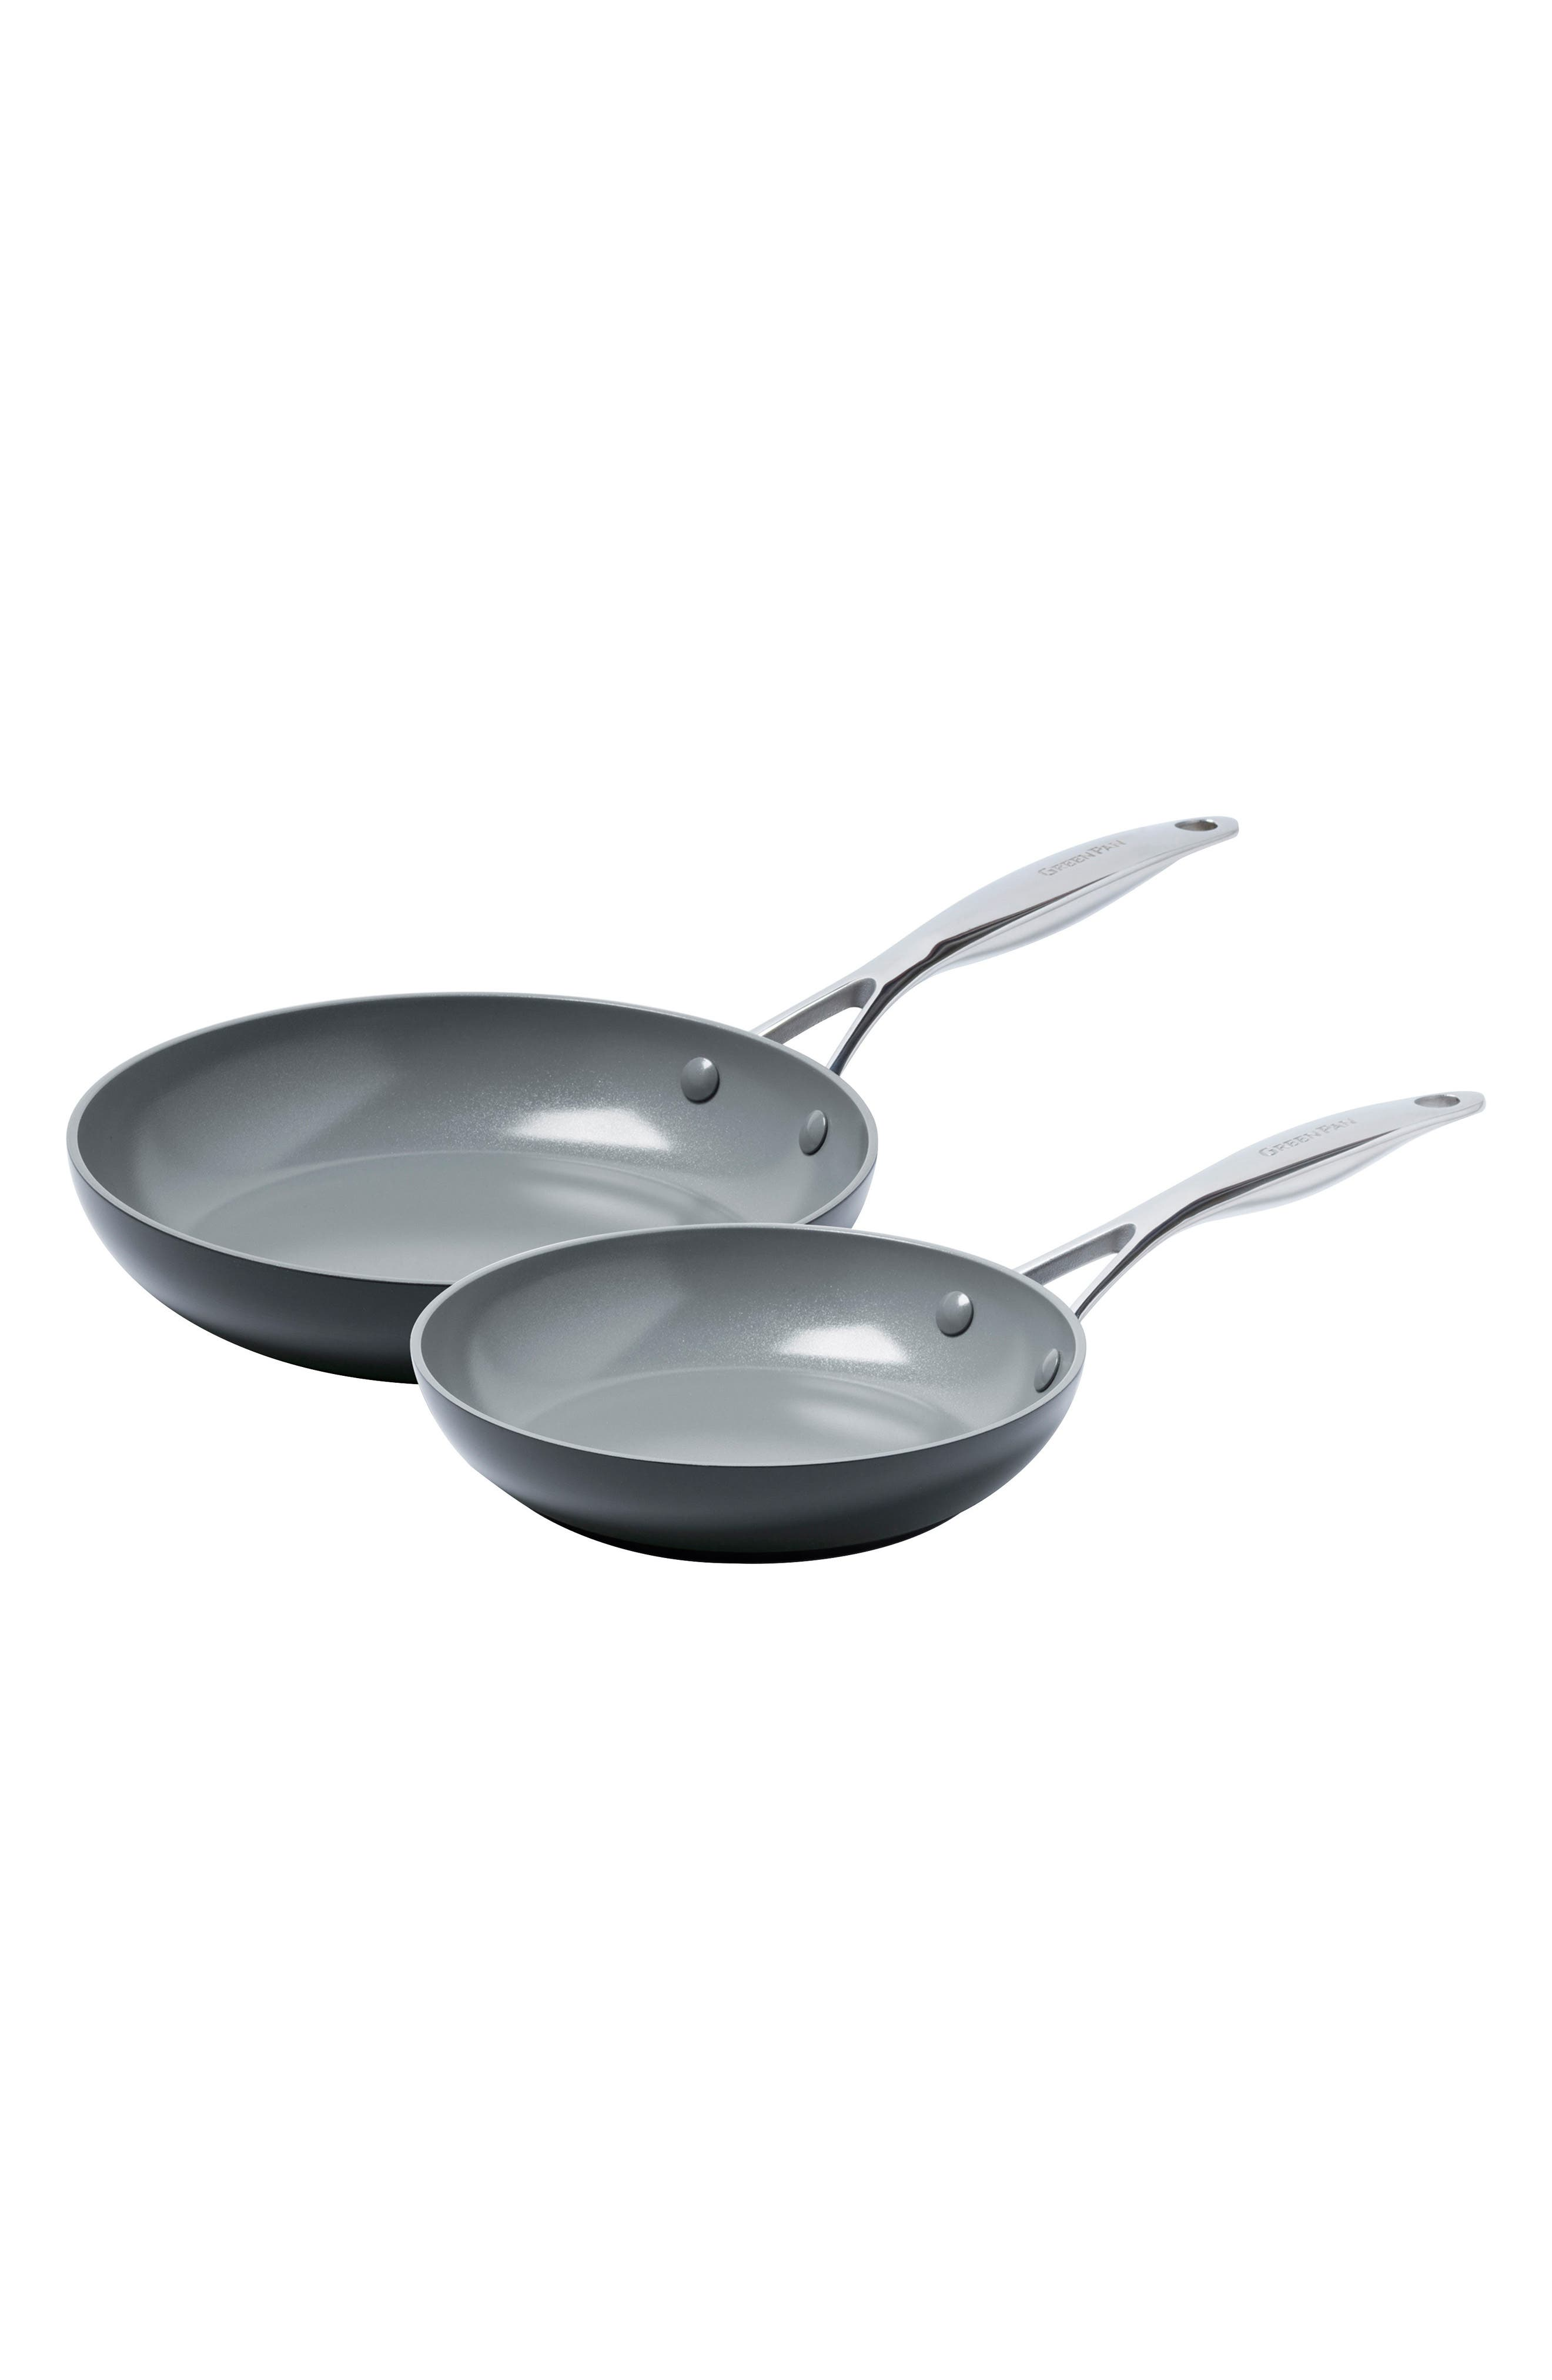 Valencia Pro 8-Inch & 10-Inch Anodized Aluminum Ceramic Nonstick Frying Pan Set,                         Main,                         color, Black